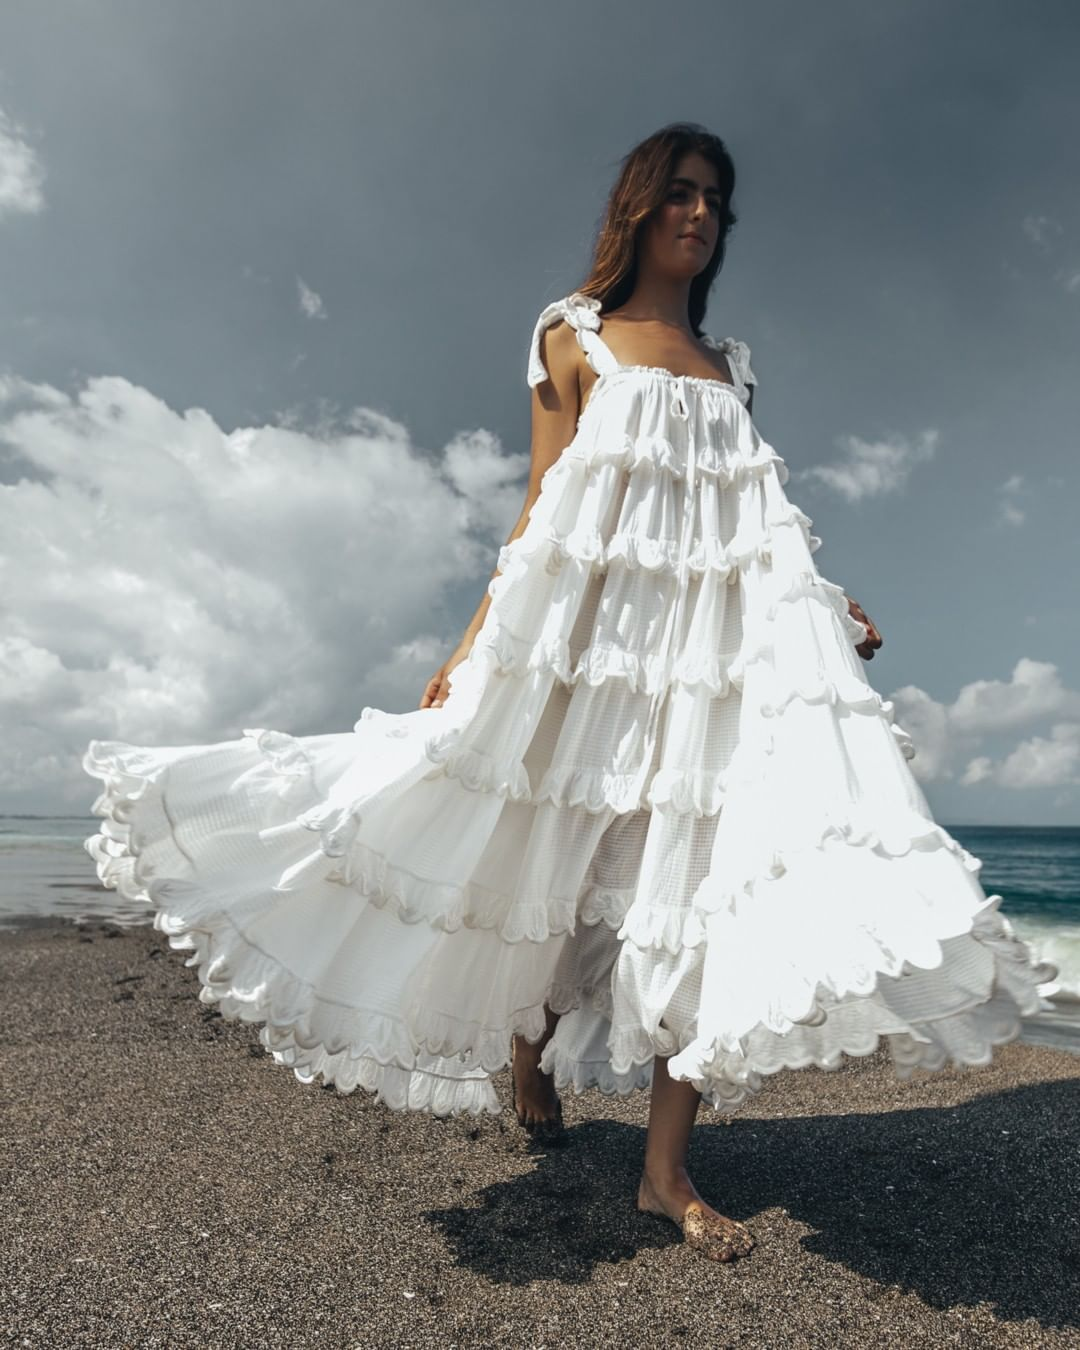 I N N I K A C H O O On Instagram Nothing We Love More Than Our Magical Scallop Frill Dress We Hope You Love Her Fashion Beach Maxi Dress Girls White Dress [ 1350 x 1080 Pixel ]